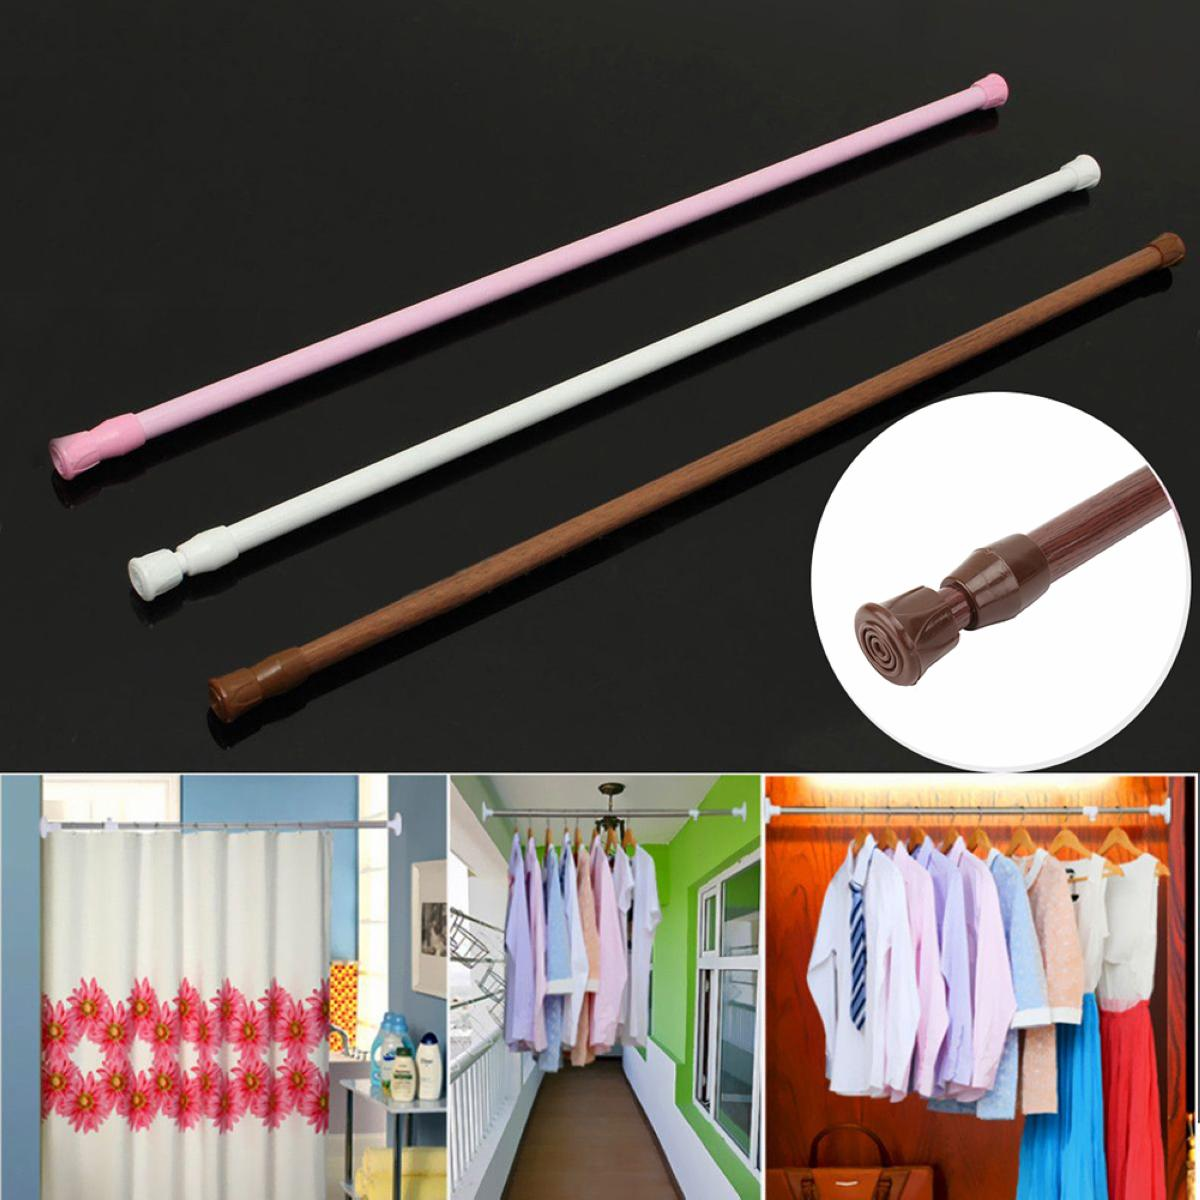 60 110cm Adjustable Spring Loaded Bathroom Shower Curtain Rod Tension Extendable Telescopic Poles Rail Hanger High Quality China